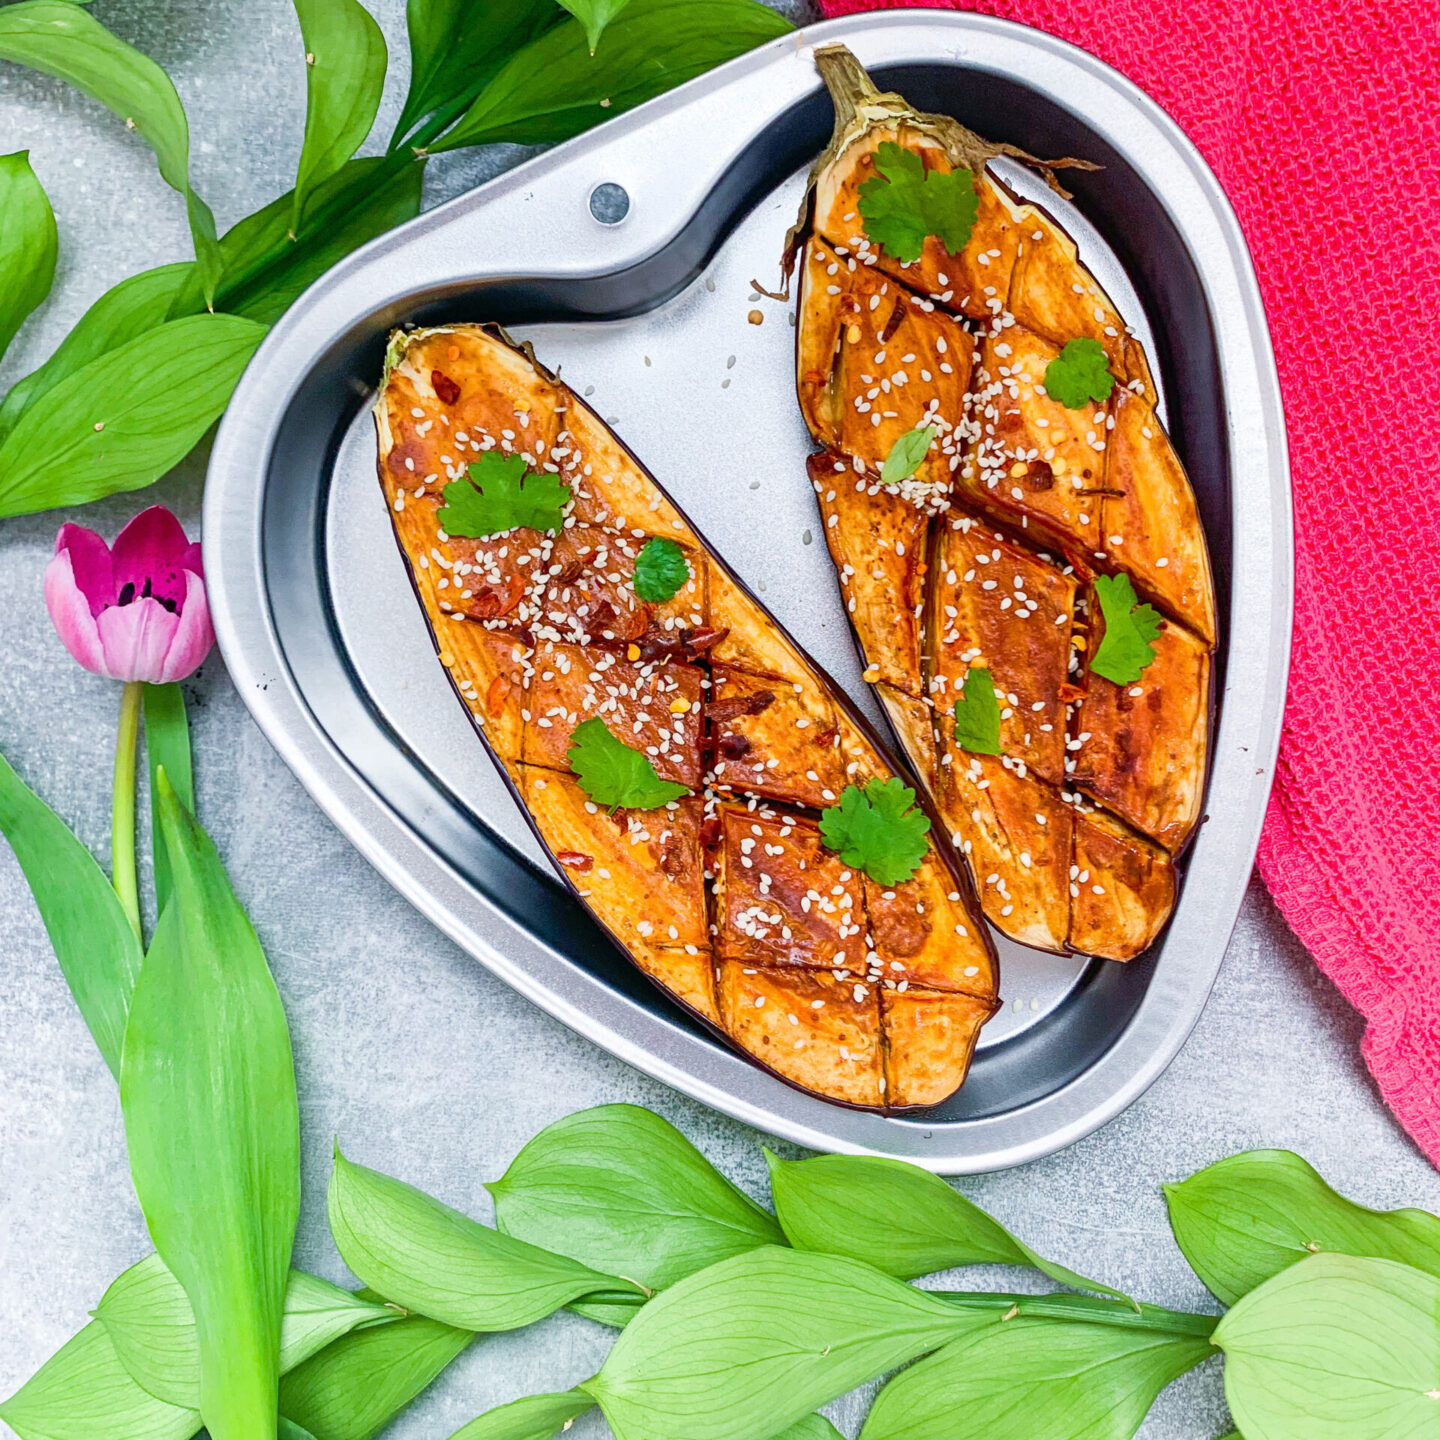 Miso and peanut butter glazed aubergine